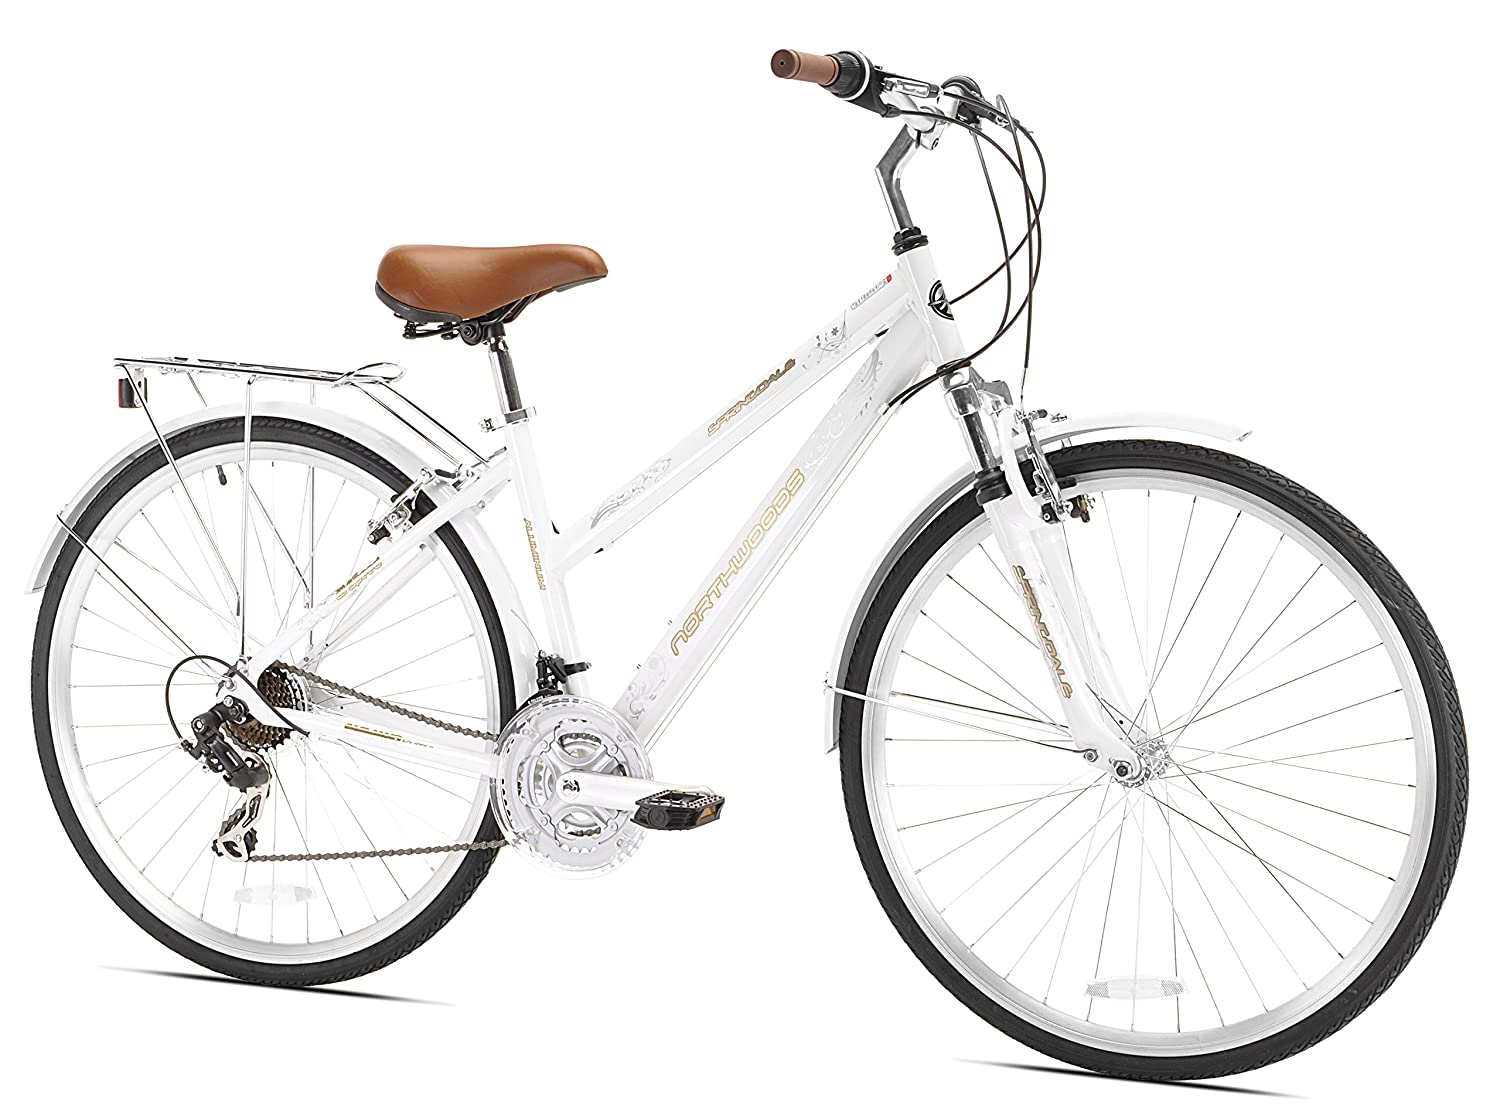 Northwoods Springdale Women's Hybrid Bicycle, 700c